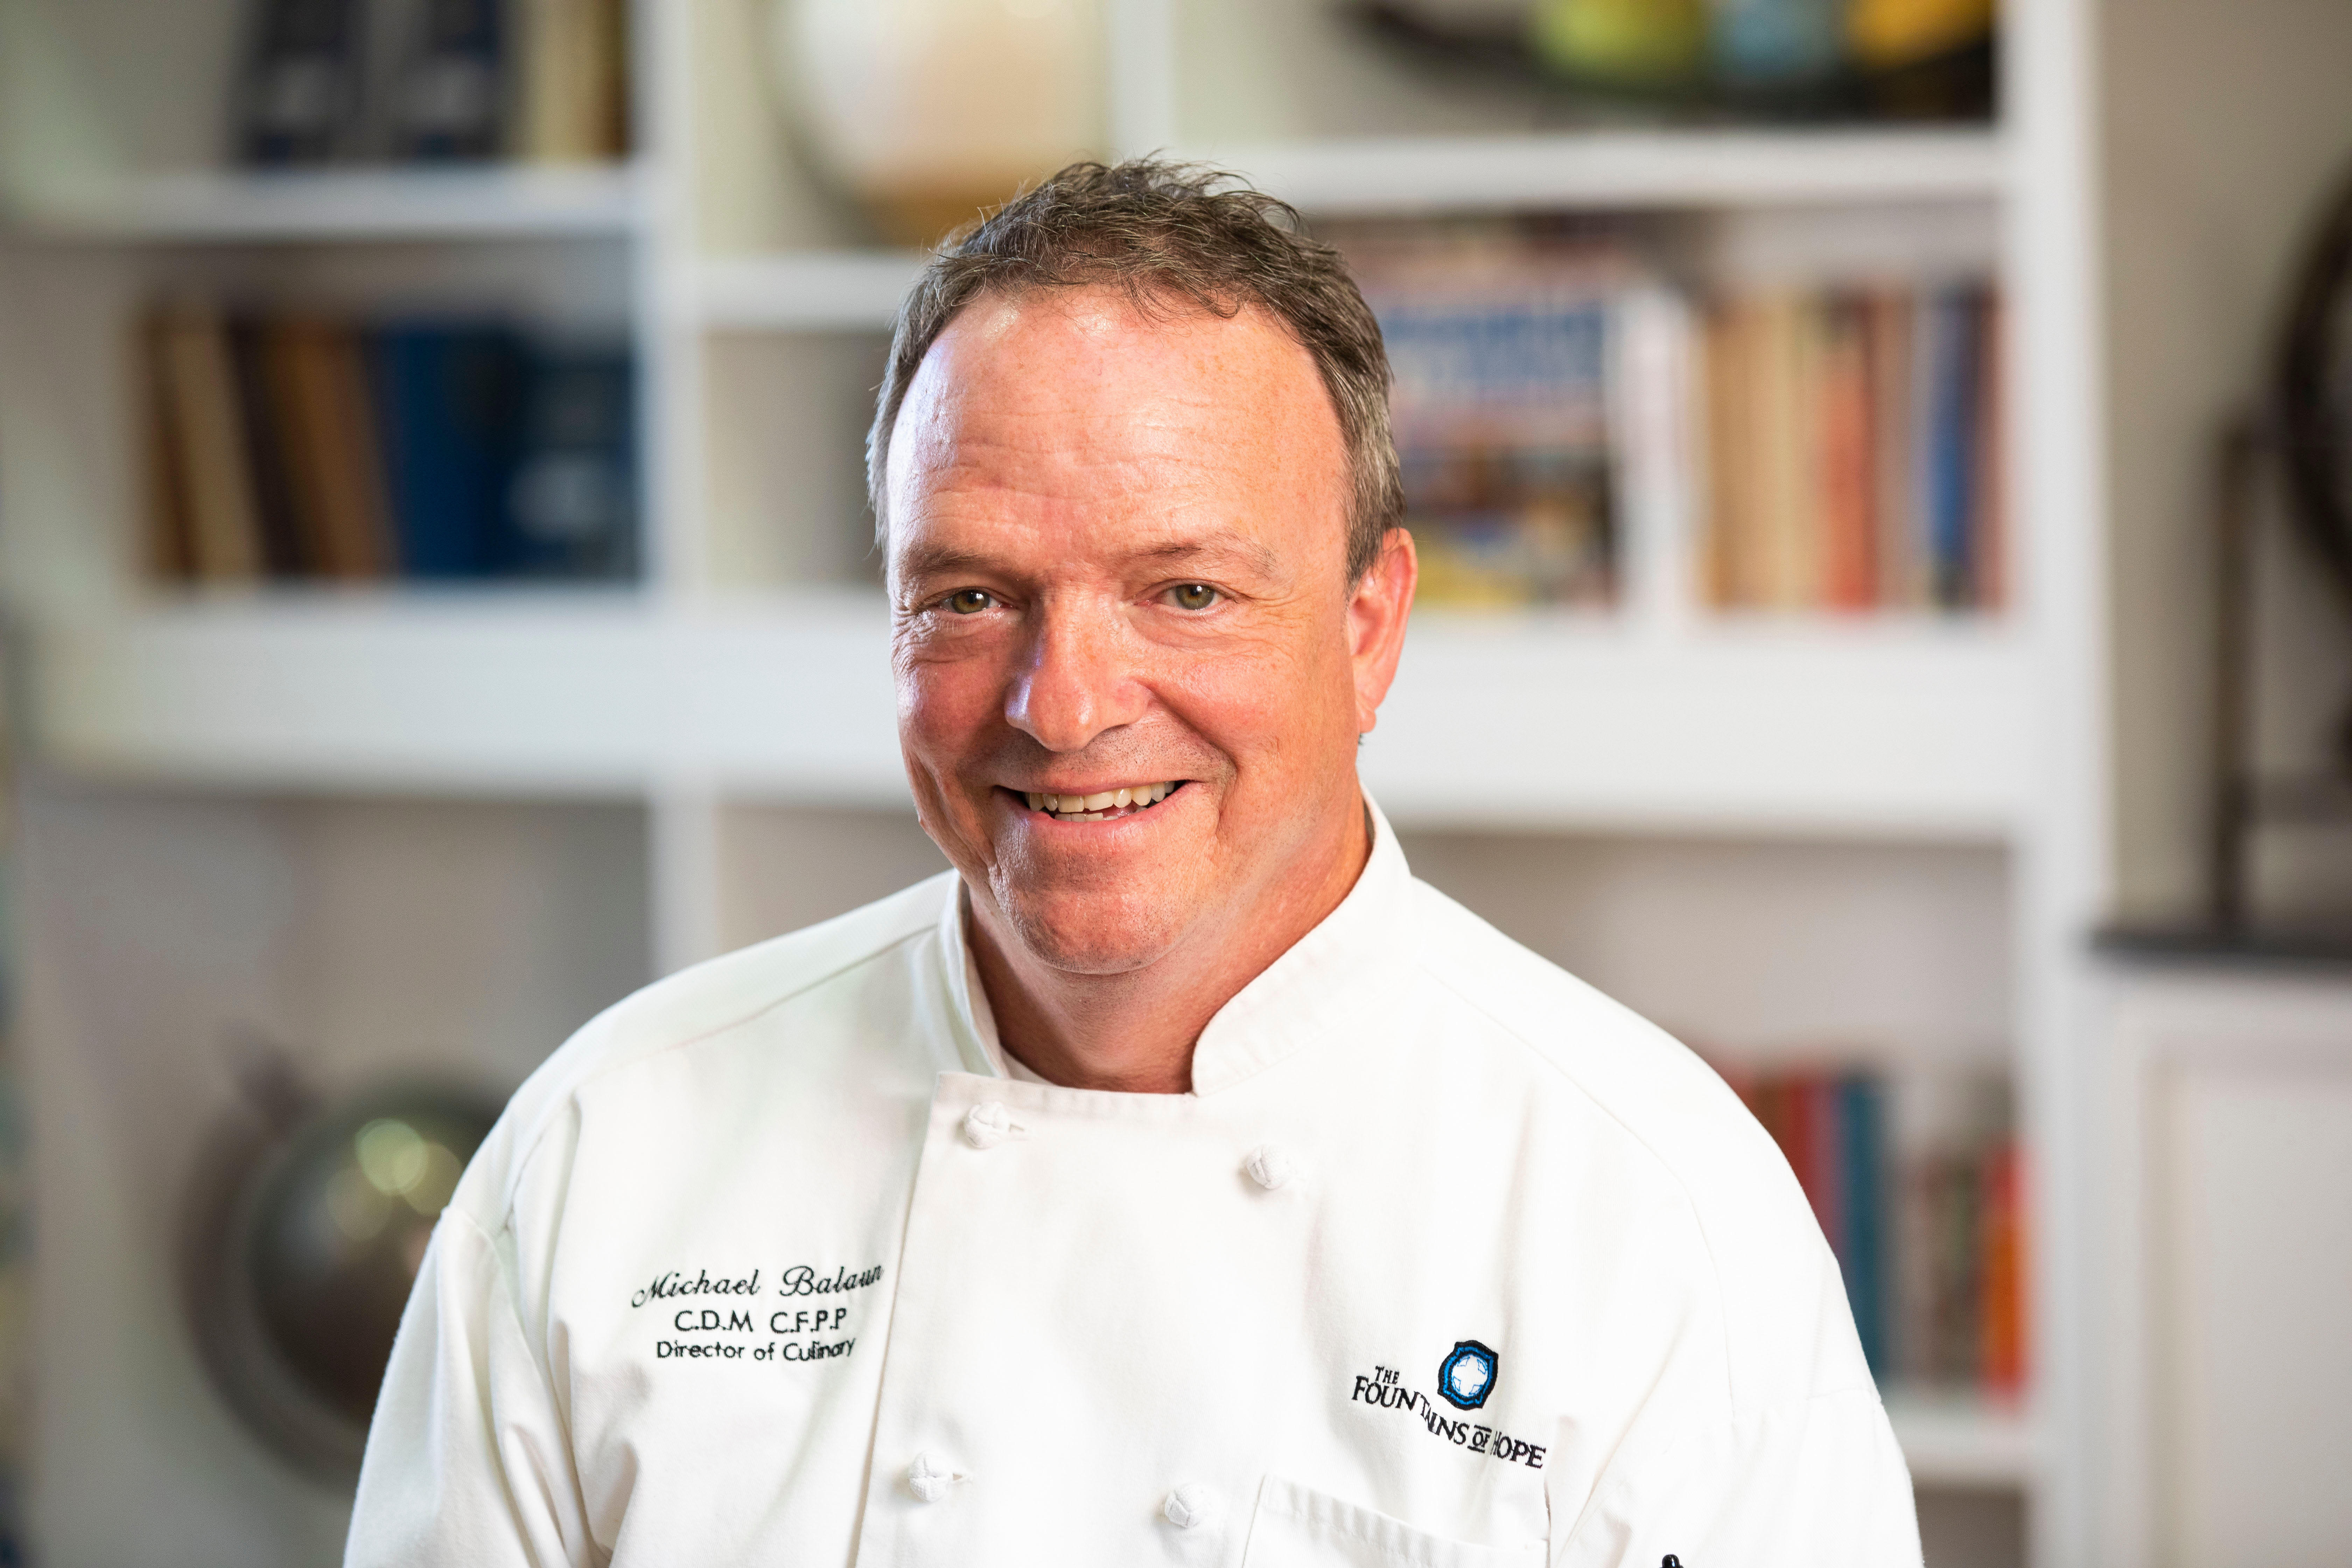 Director of Dining Services - Chef Michael Balaun at The Fountains of Hope in Sarasota, Florida